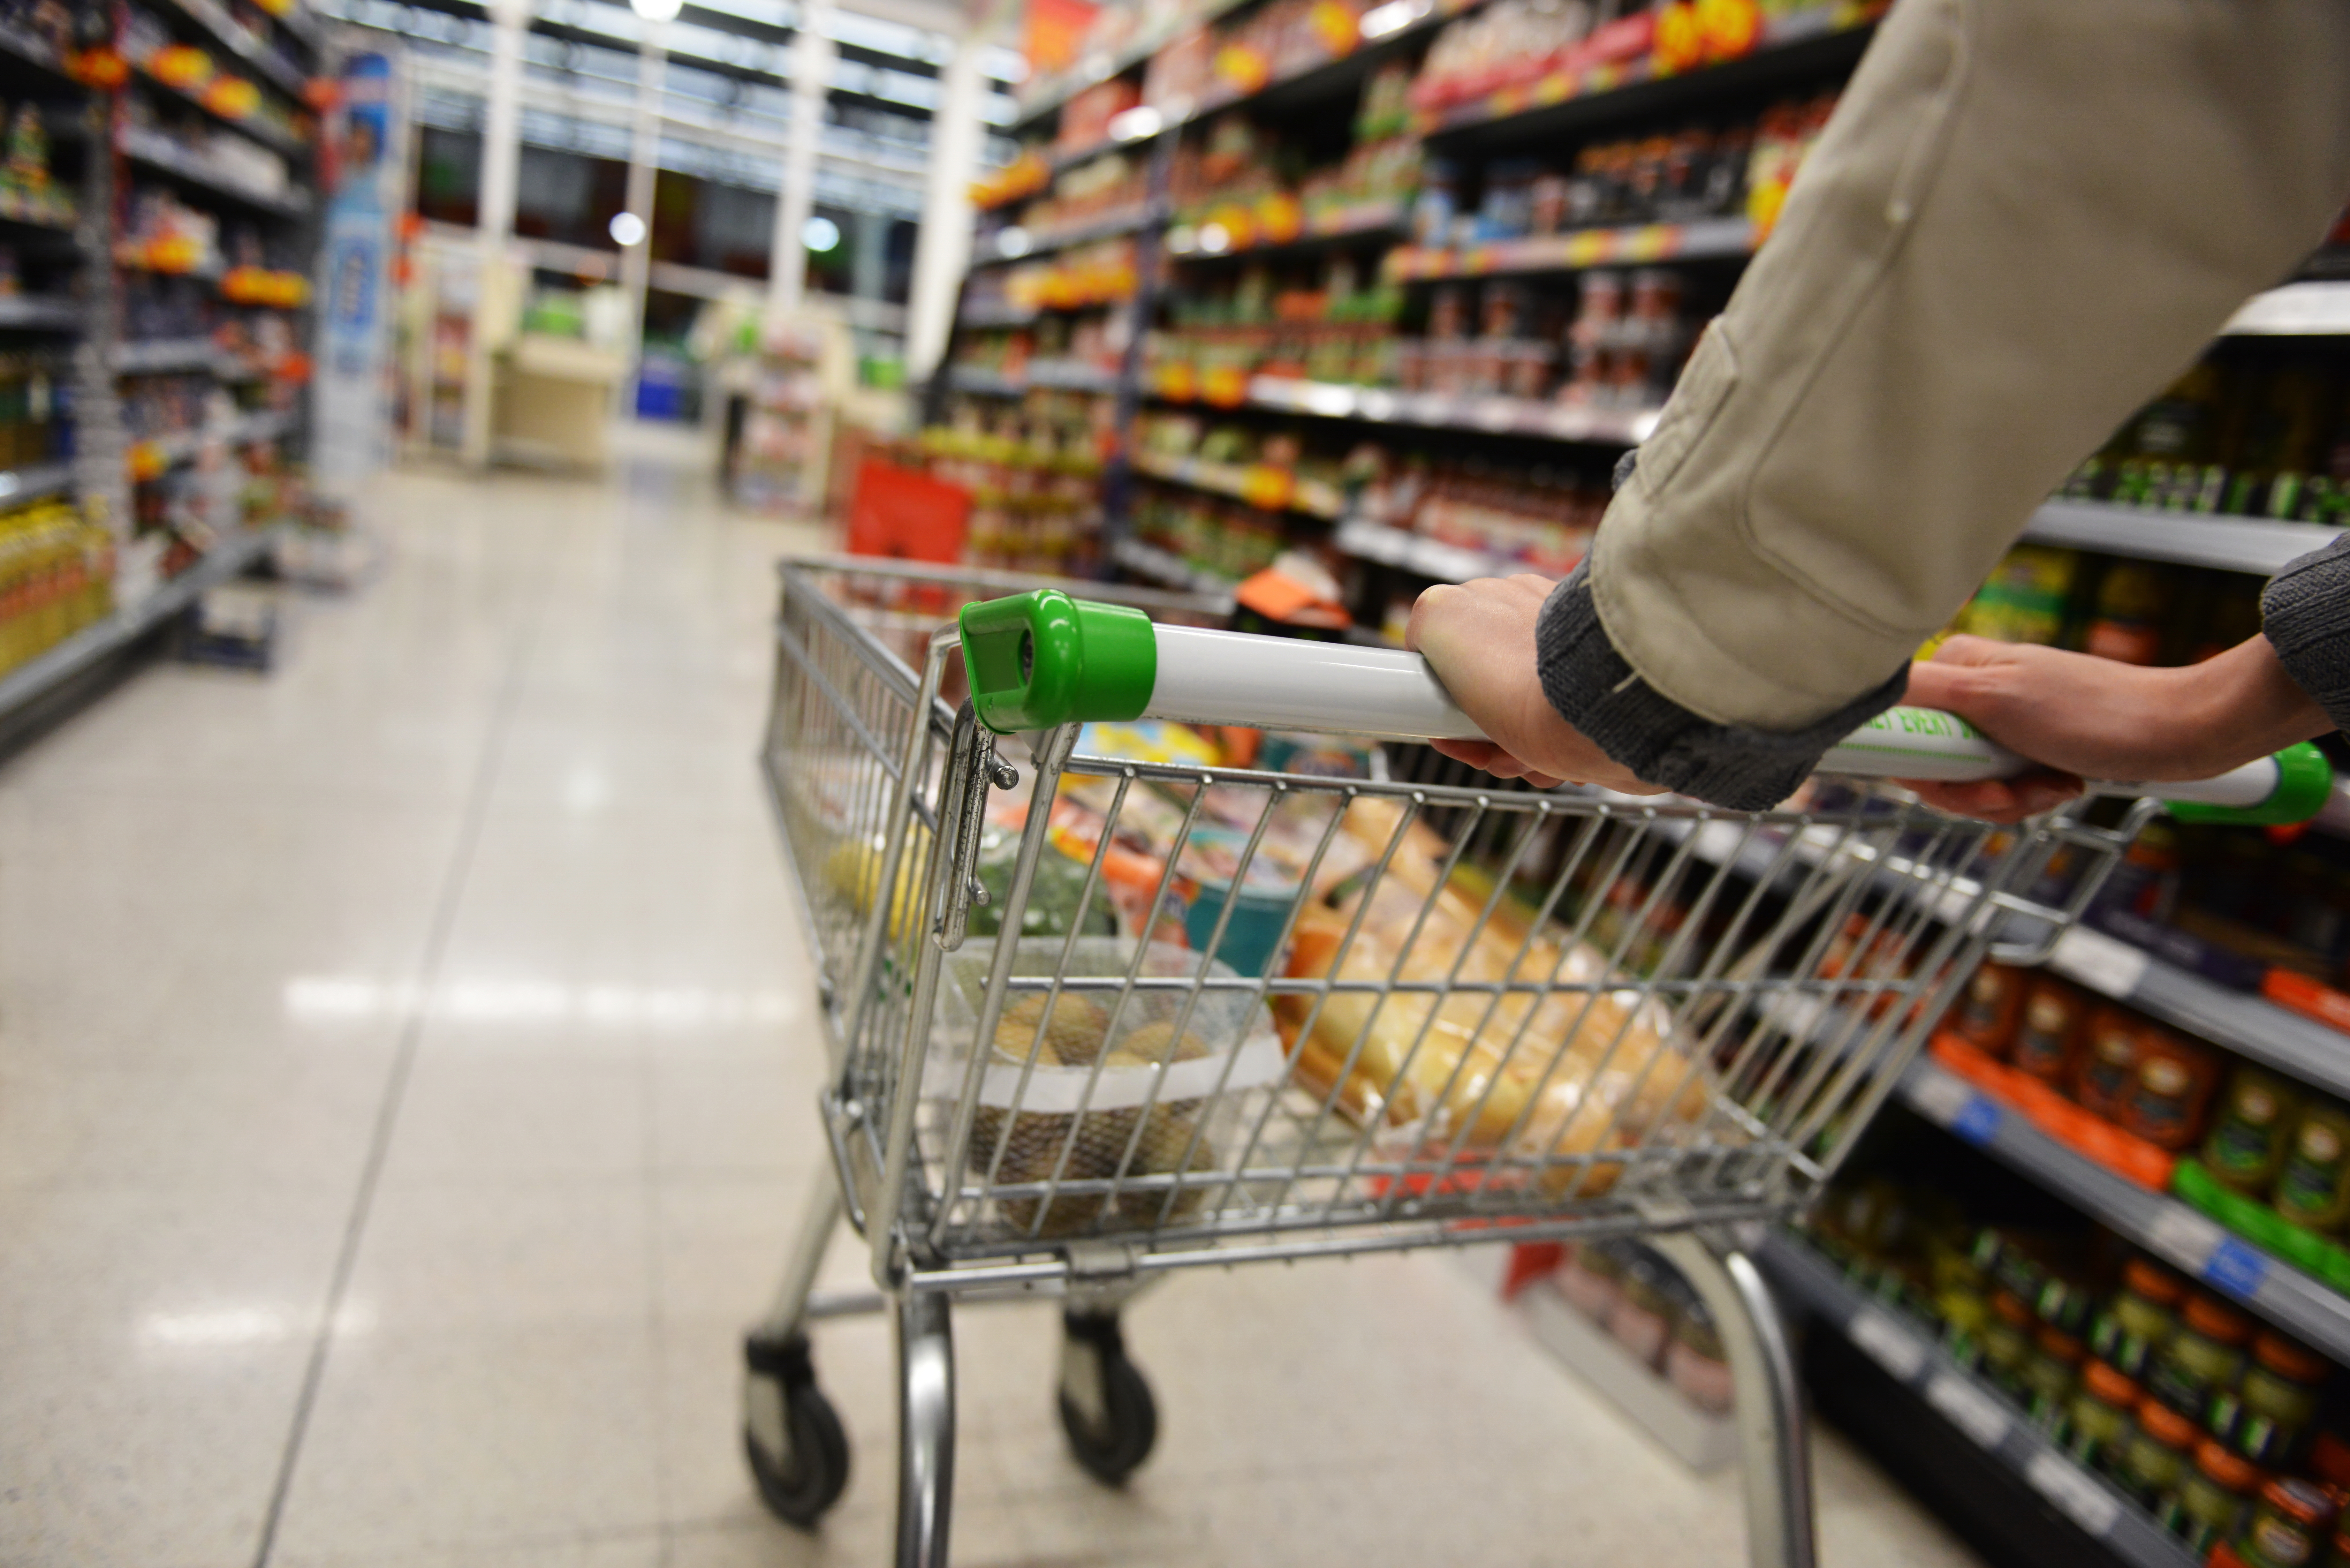 Moldova's annual inflation rate stays flat in August